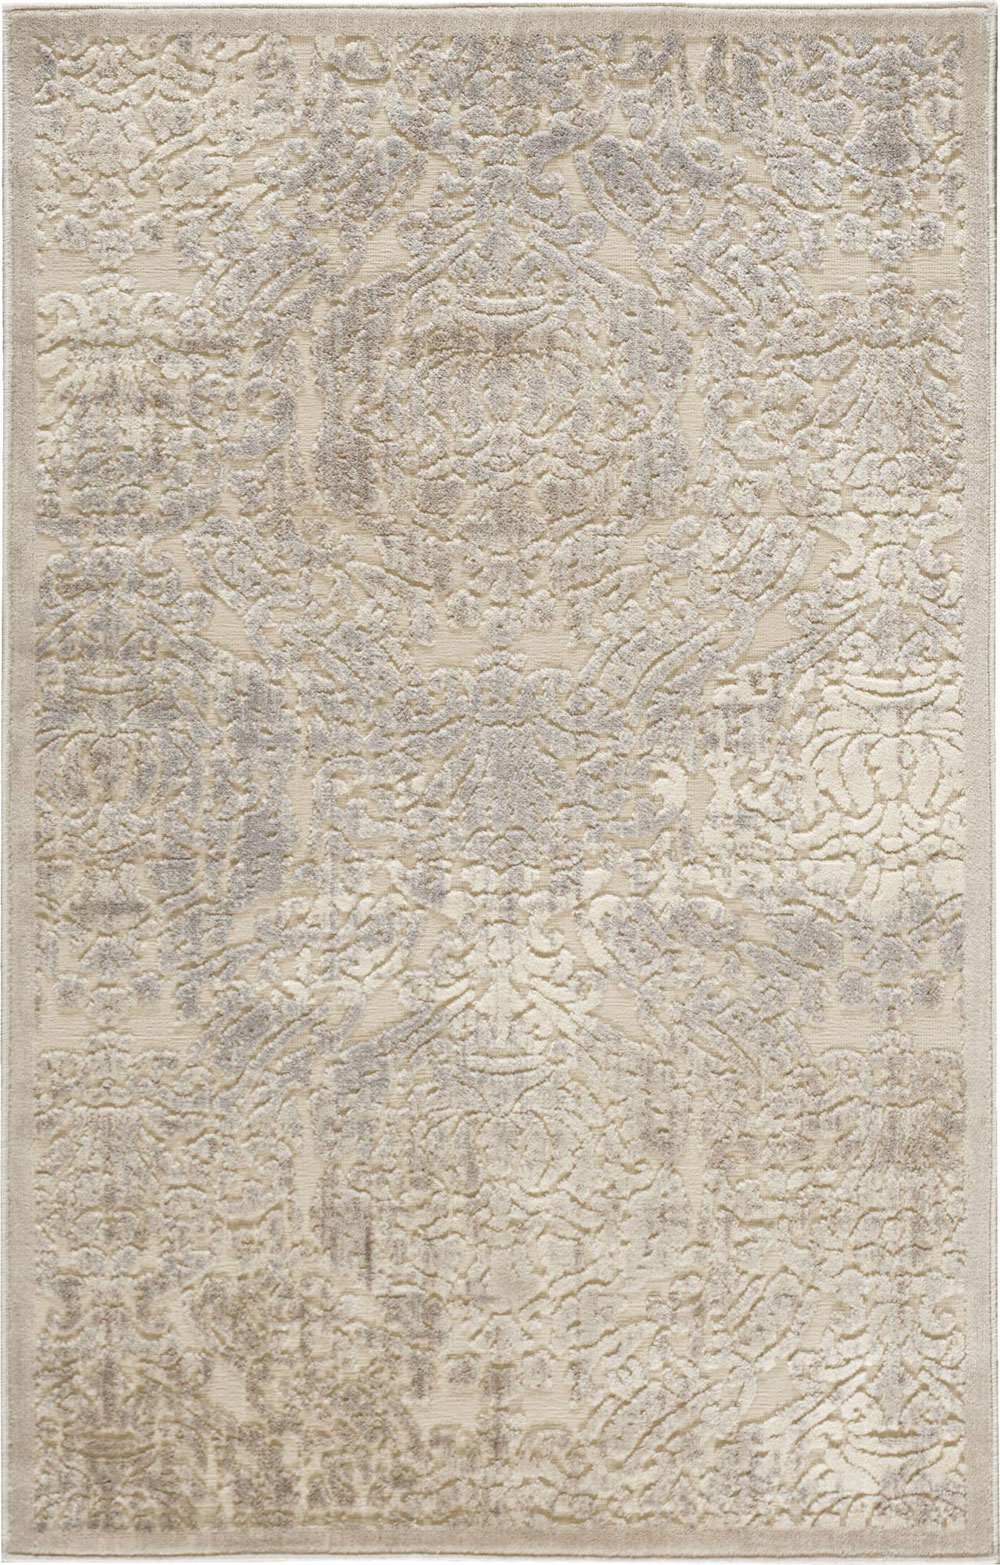 Nourison GRAPHIC ILLUSIONS GIL09 IVORY Rug